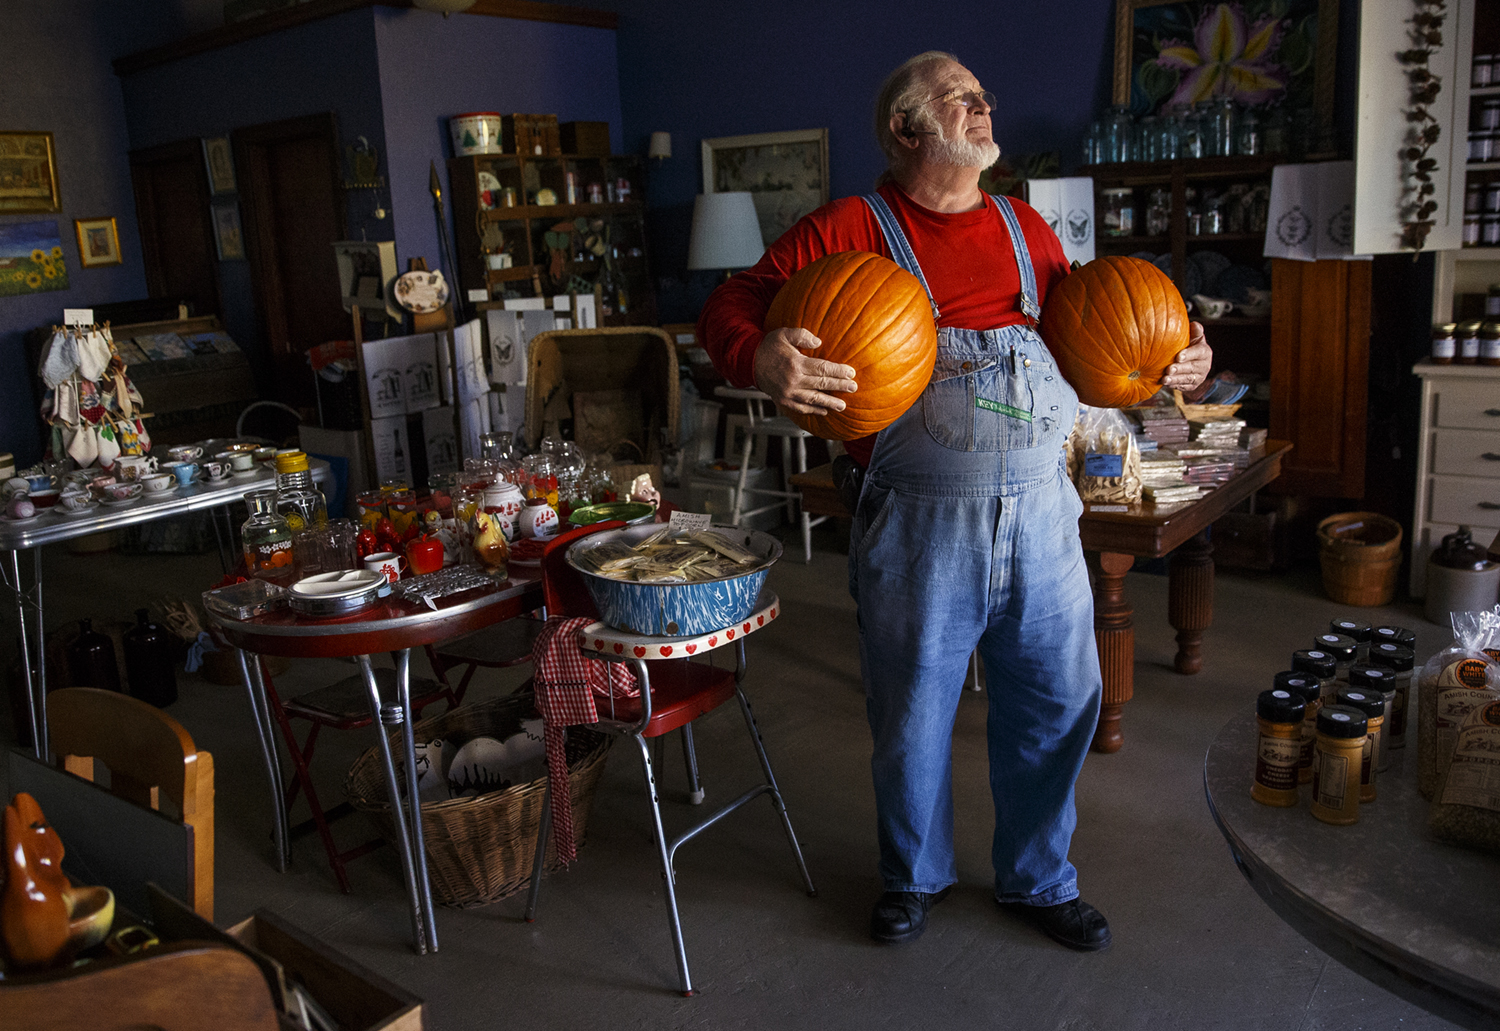 Peter Niehaus pauses as he carries two pumpkins to the front of The Little Fox in downtown Elkhart Tuesday, Oct. 6, 2015. Niehaus, who also operates the adjoining businesses The Wild Hare and Horsefeathers with his wife Andrea, spent the day decorating downtown in preparation for the upcoming Elkhart Fall Festival.    Ted Schurter/The State Journal-Register